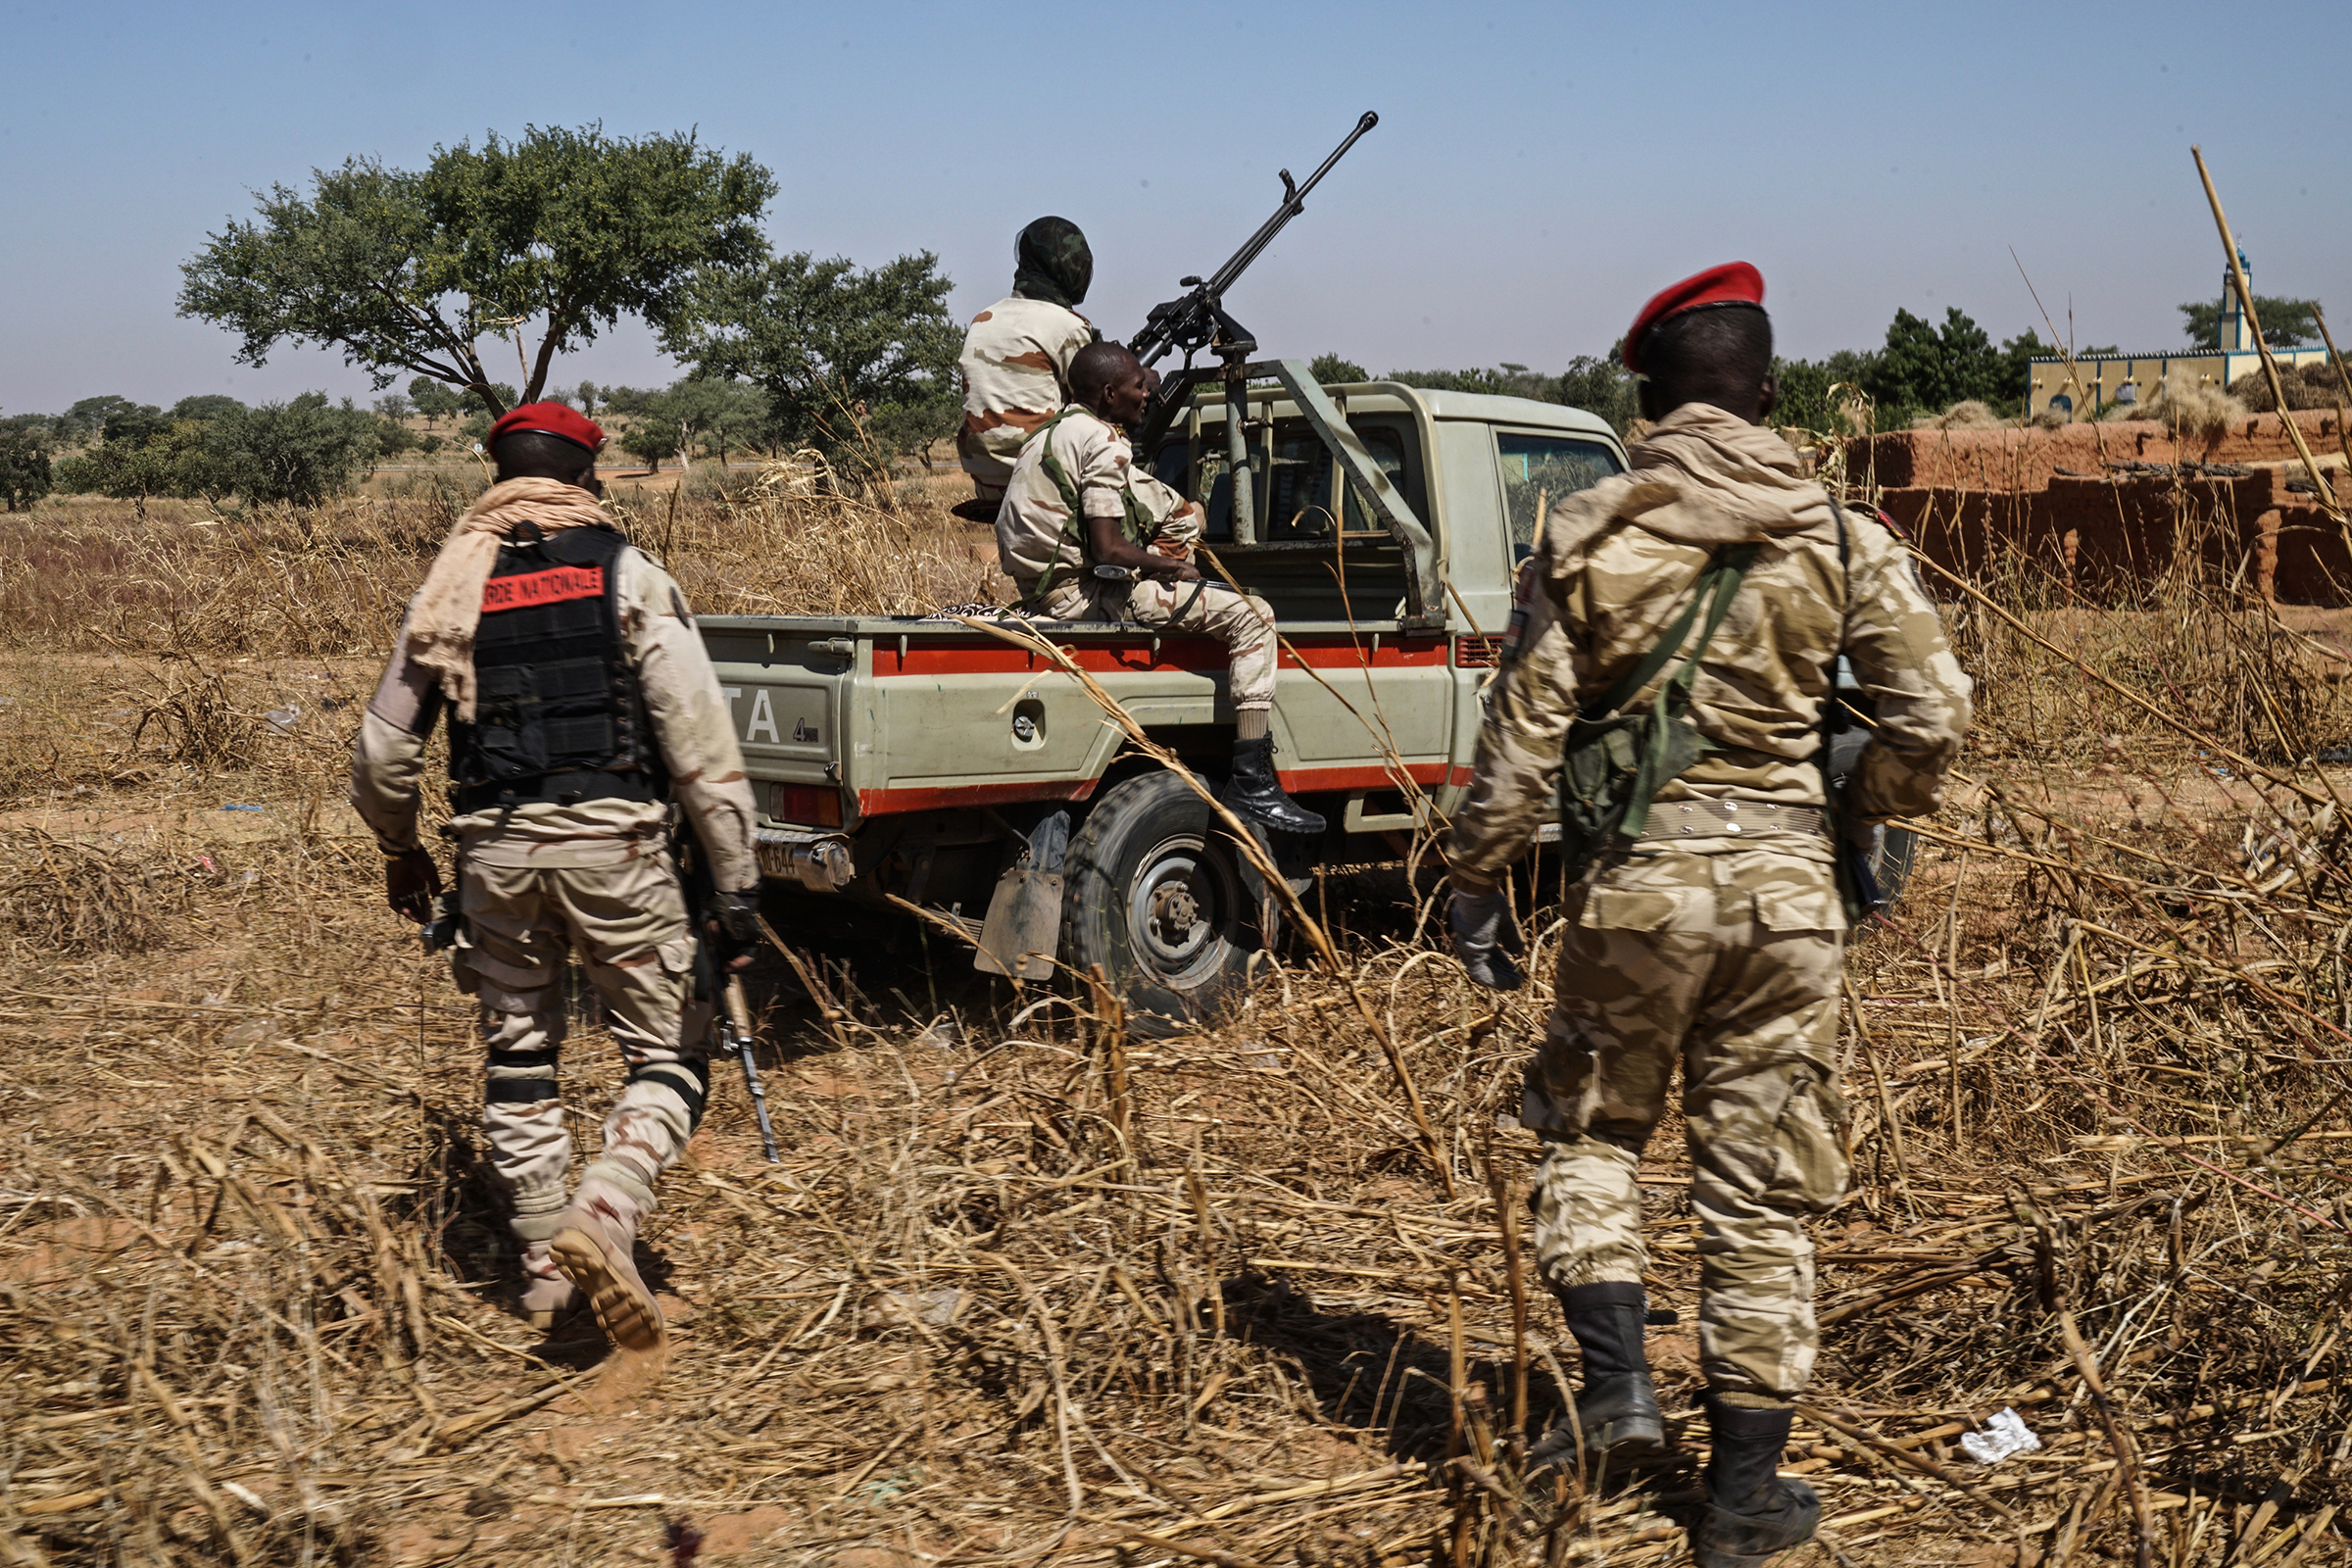 Nigerien Army troops on patrol in southern Niger, close to the Nigerian border.